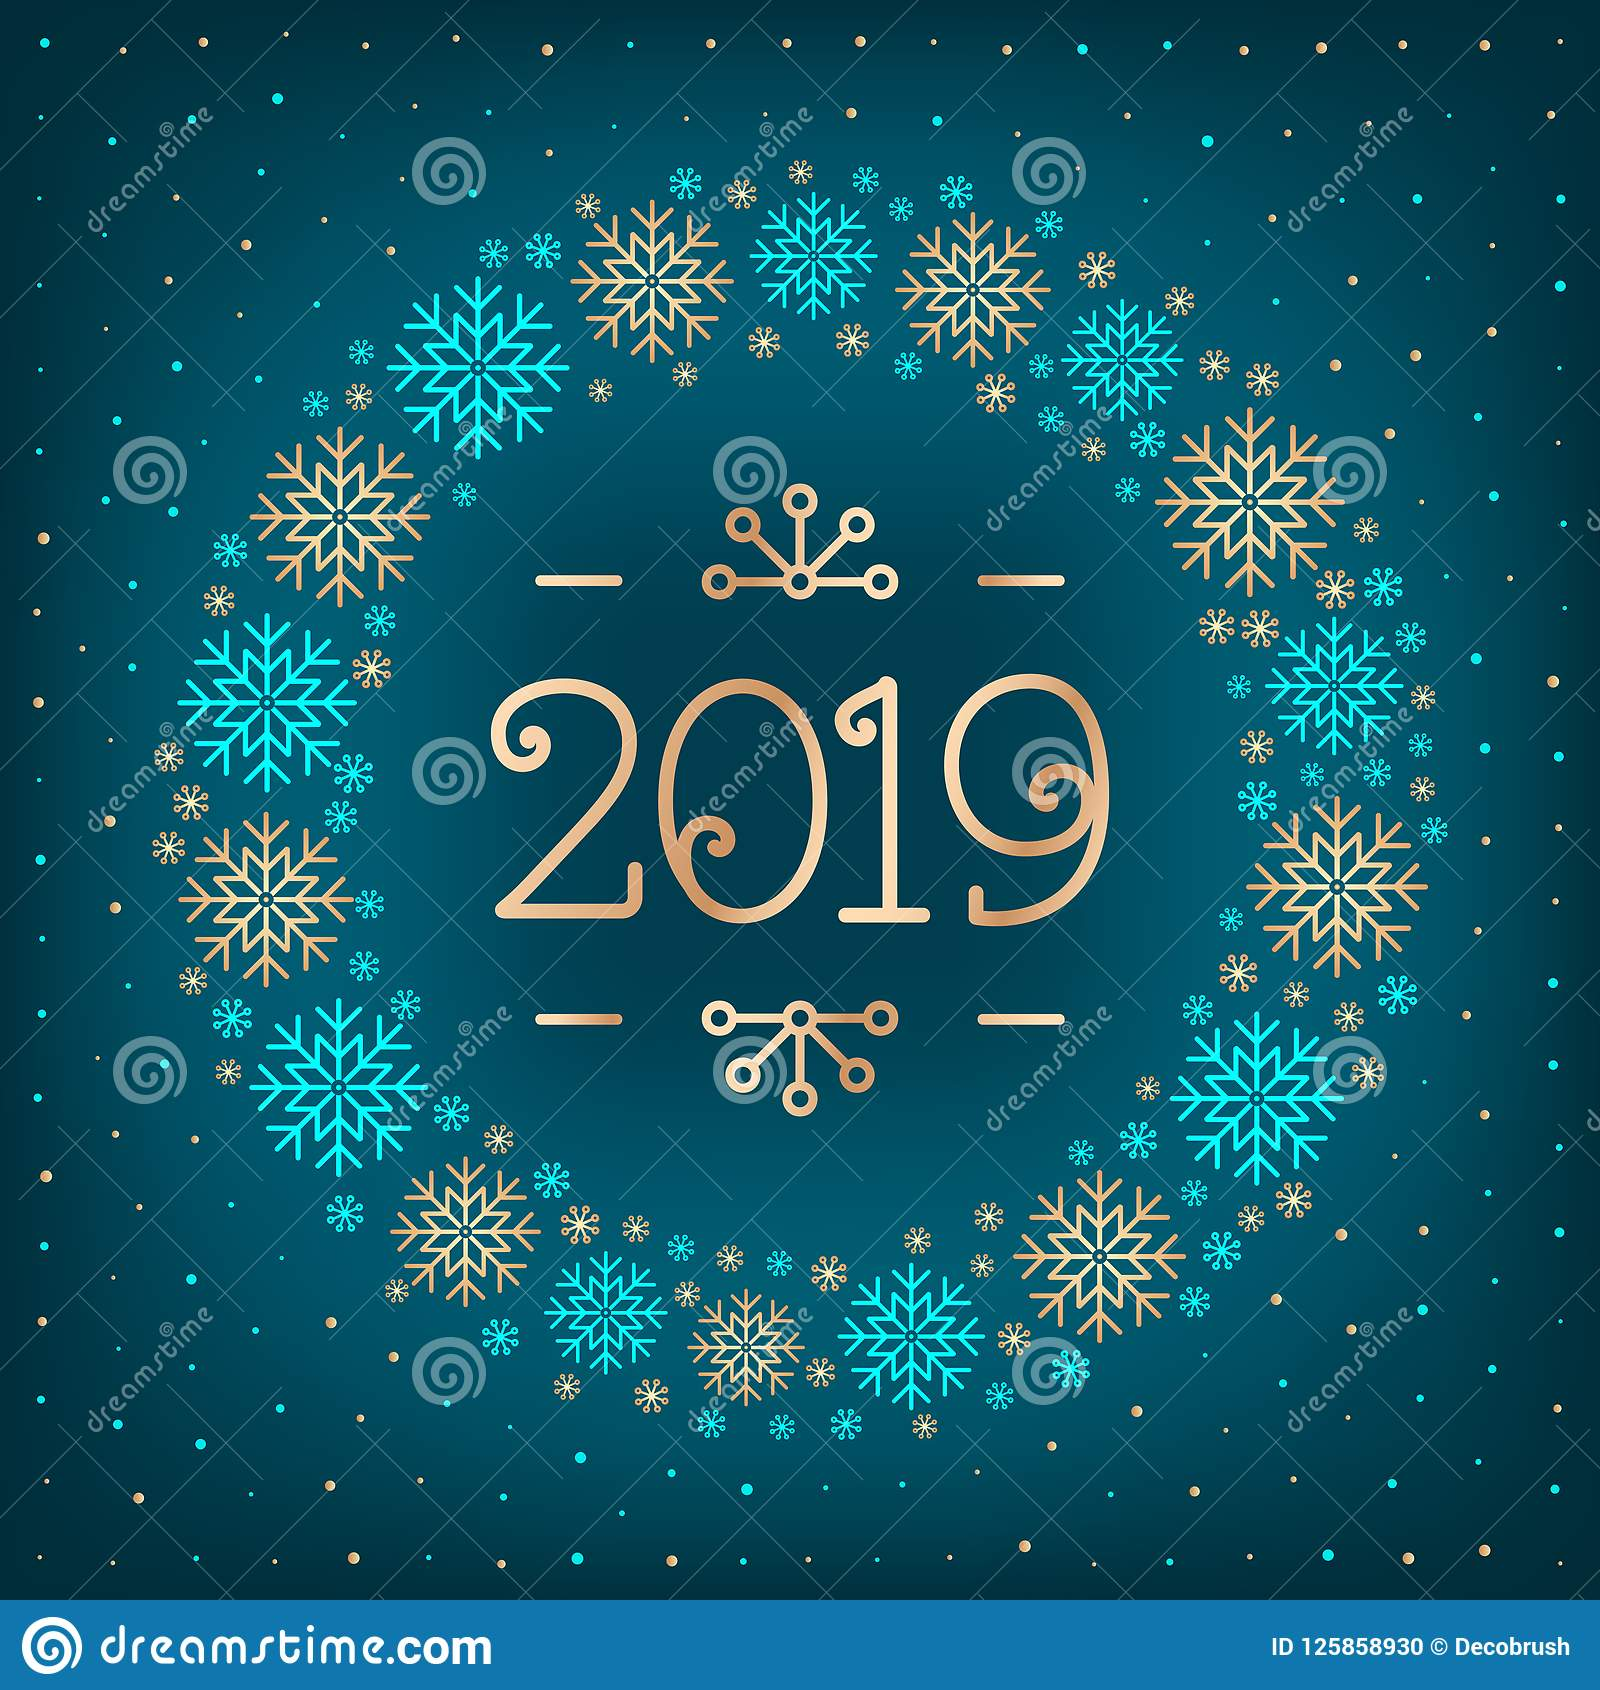 2019 Christmas Cards 2019 Text Christmas Card Happy New Year Holiday Greeting Card